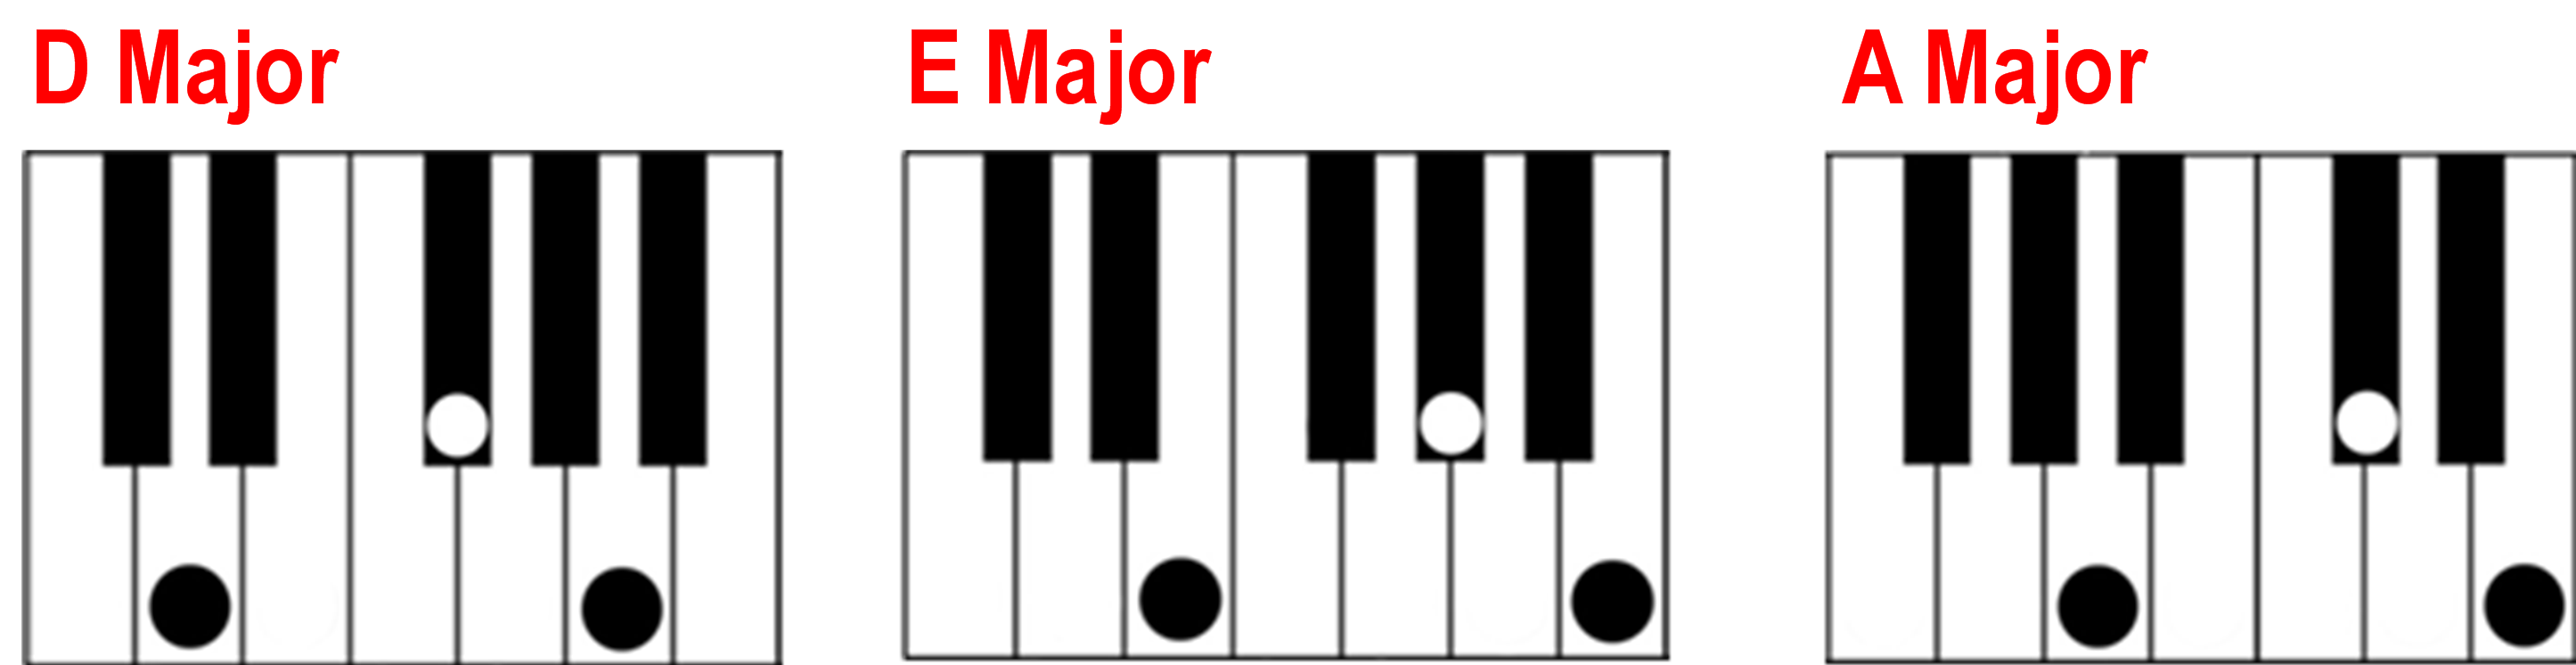 Finding a major chord on the piano d e a major chords on the piano keyboard hexwebz Image collections